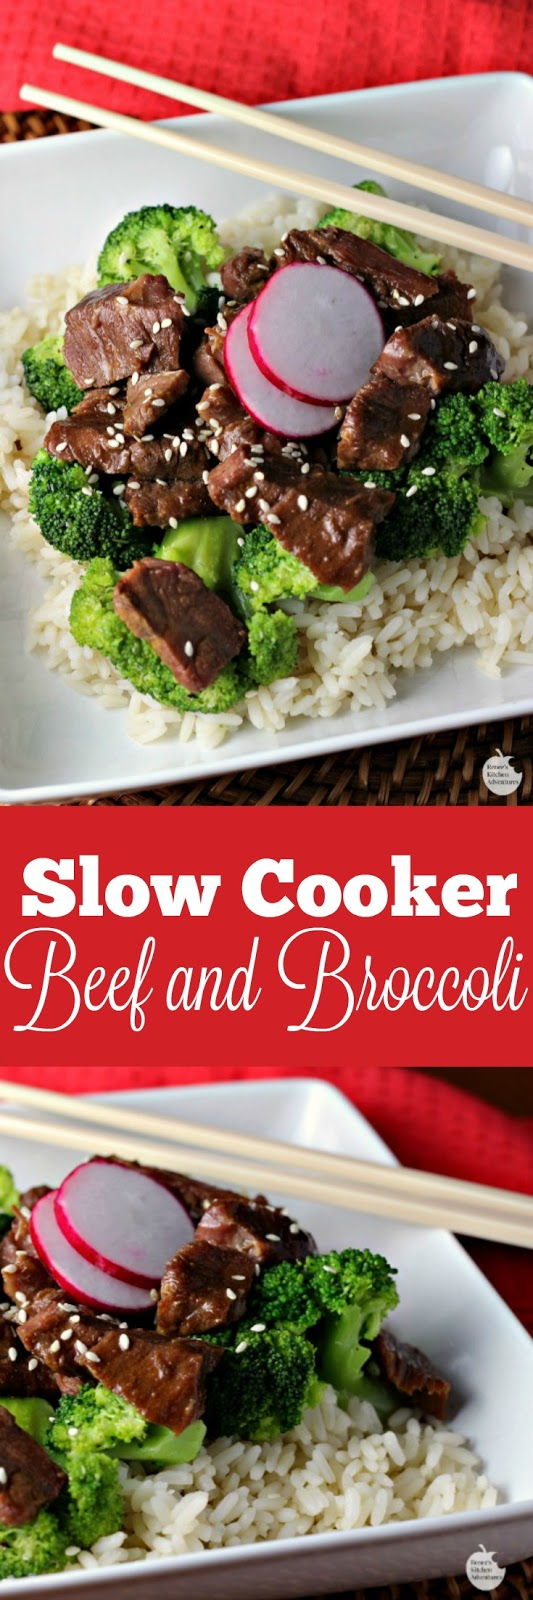 Slow Cooker Beef and Broccoli | by Renee's Kitchen Adventures - Easy crockpot recipe with lots of Asian flavor!  You have to make this better than takeout recipe for dinner tonight!